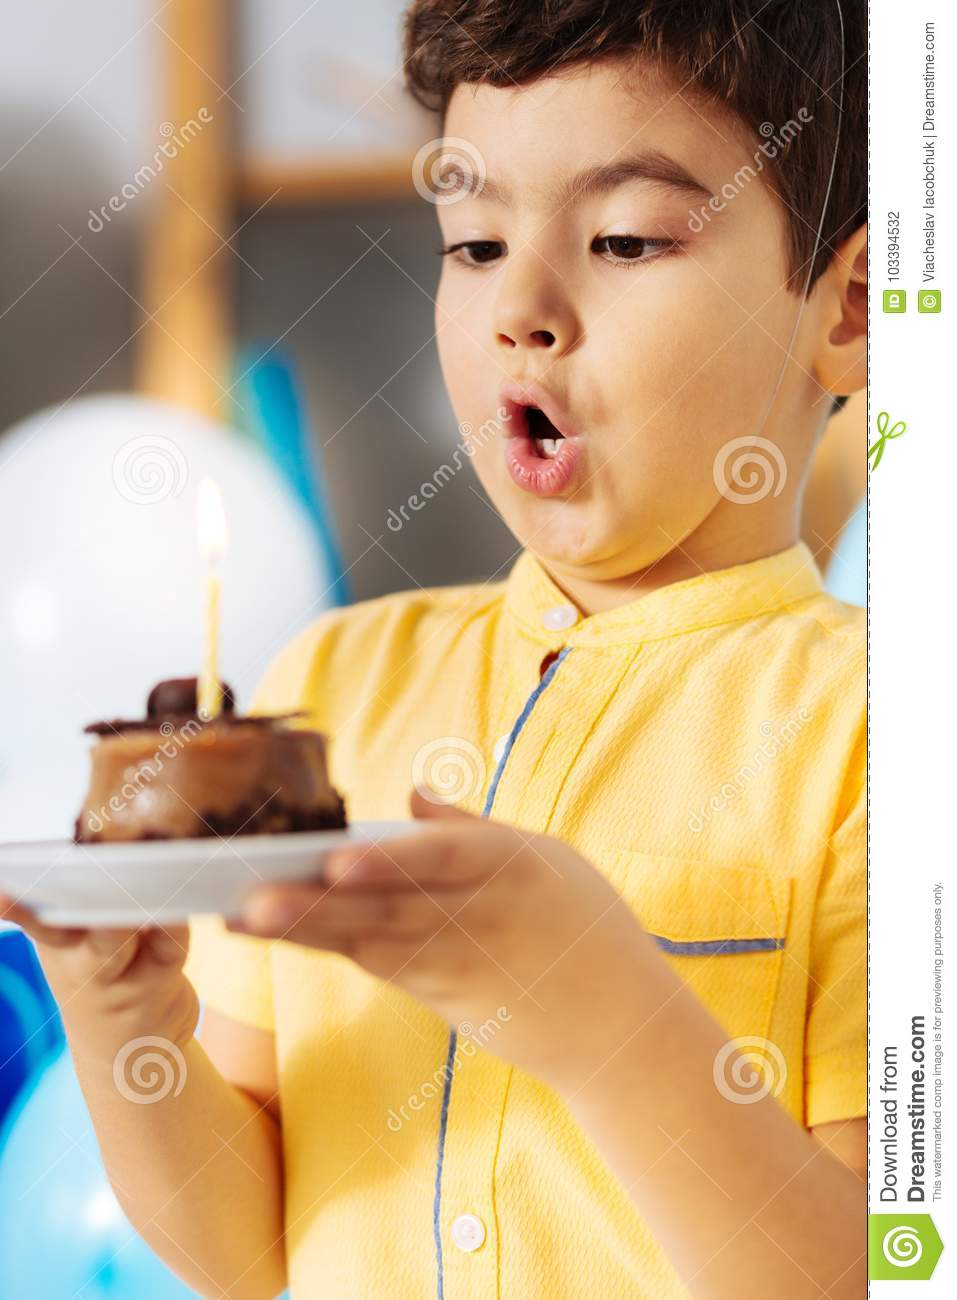 Cute Little Boy Blowing Out Candle On His Birthday Cake